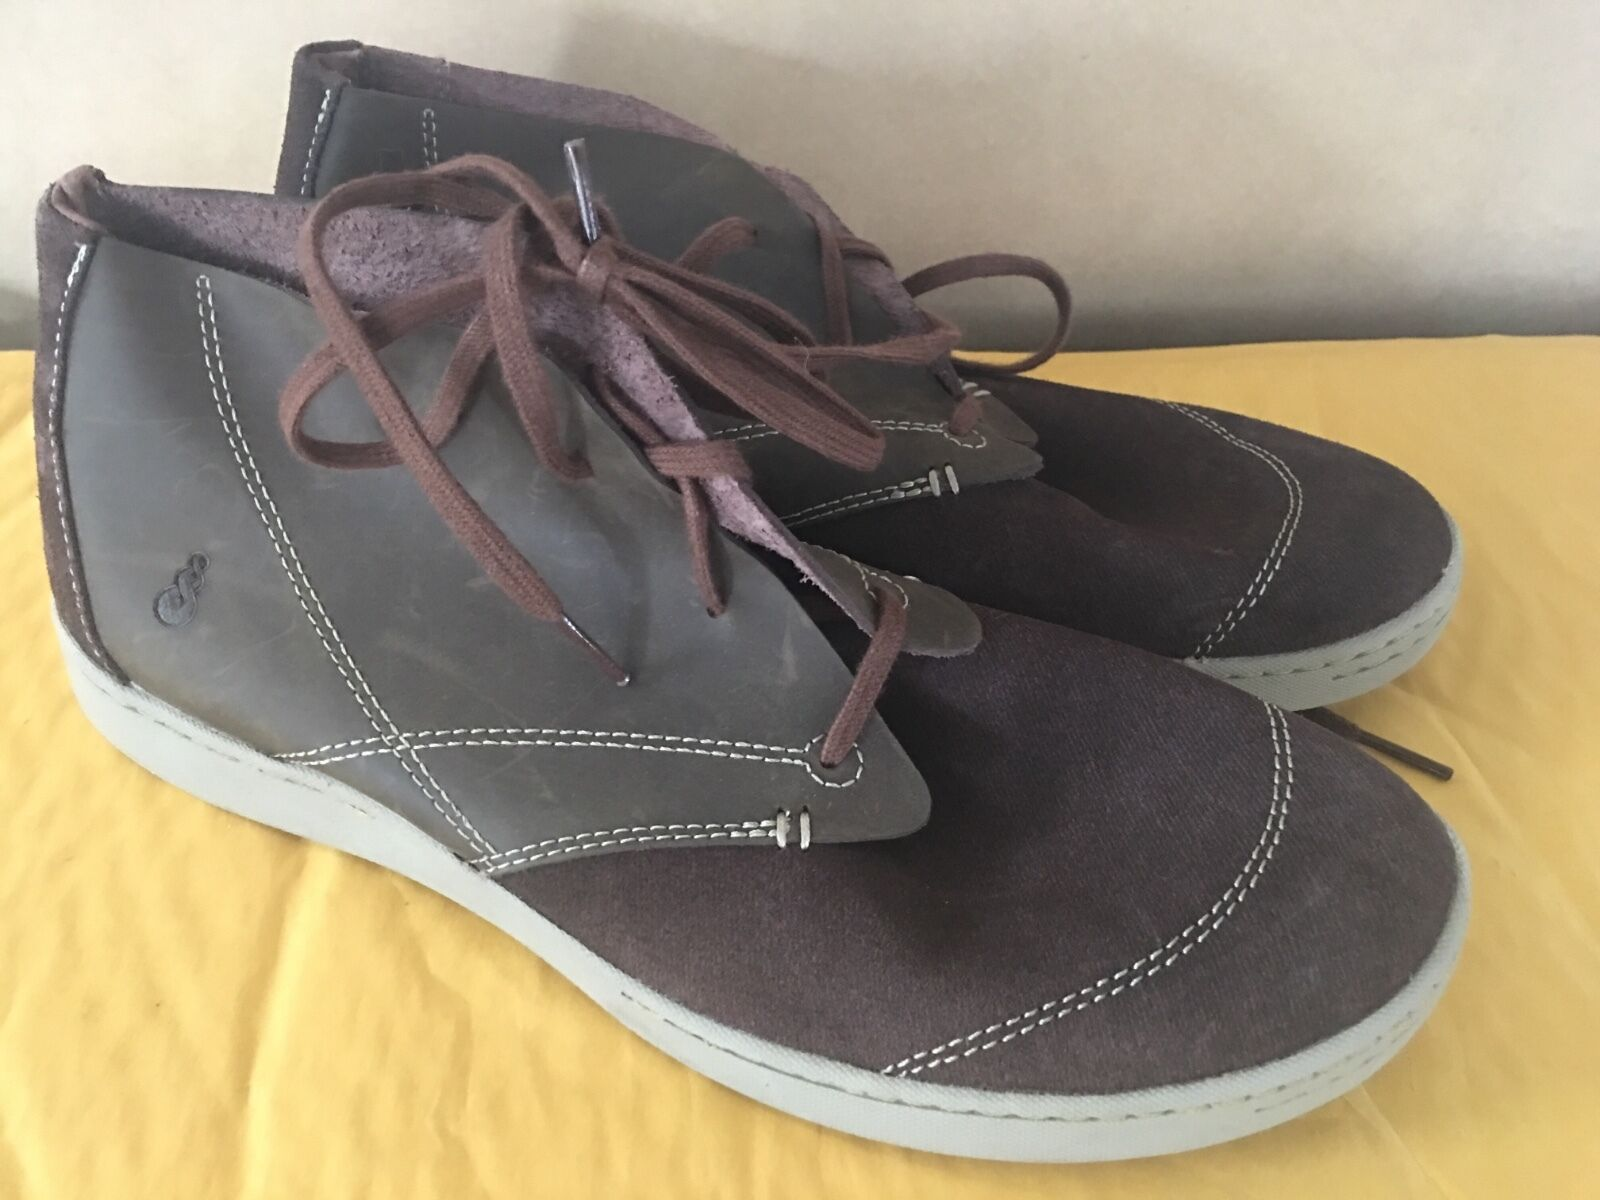 120 AHNU Pier 3 Women's Size 8 Chukka Bootie  Port Ankle shoes X1-662